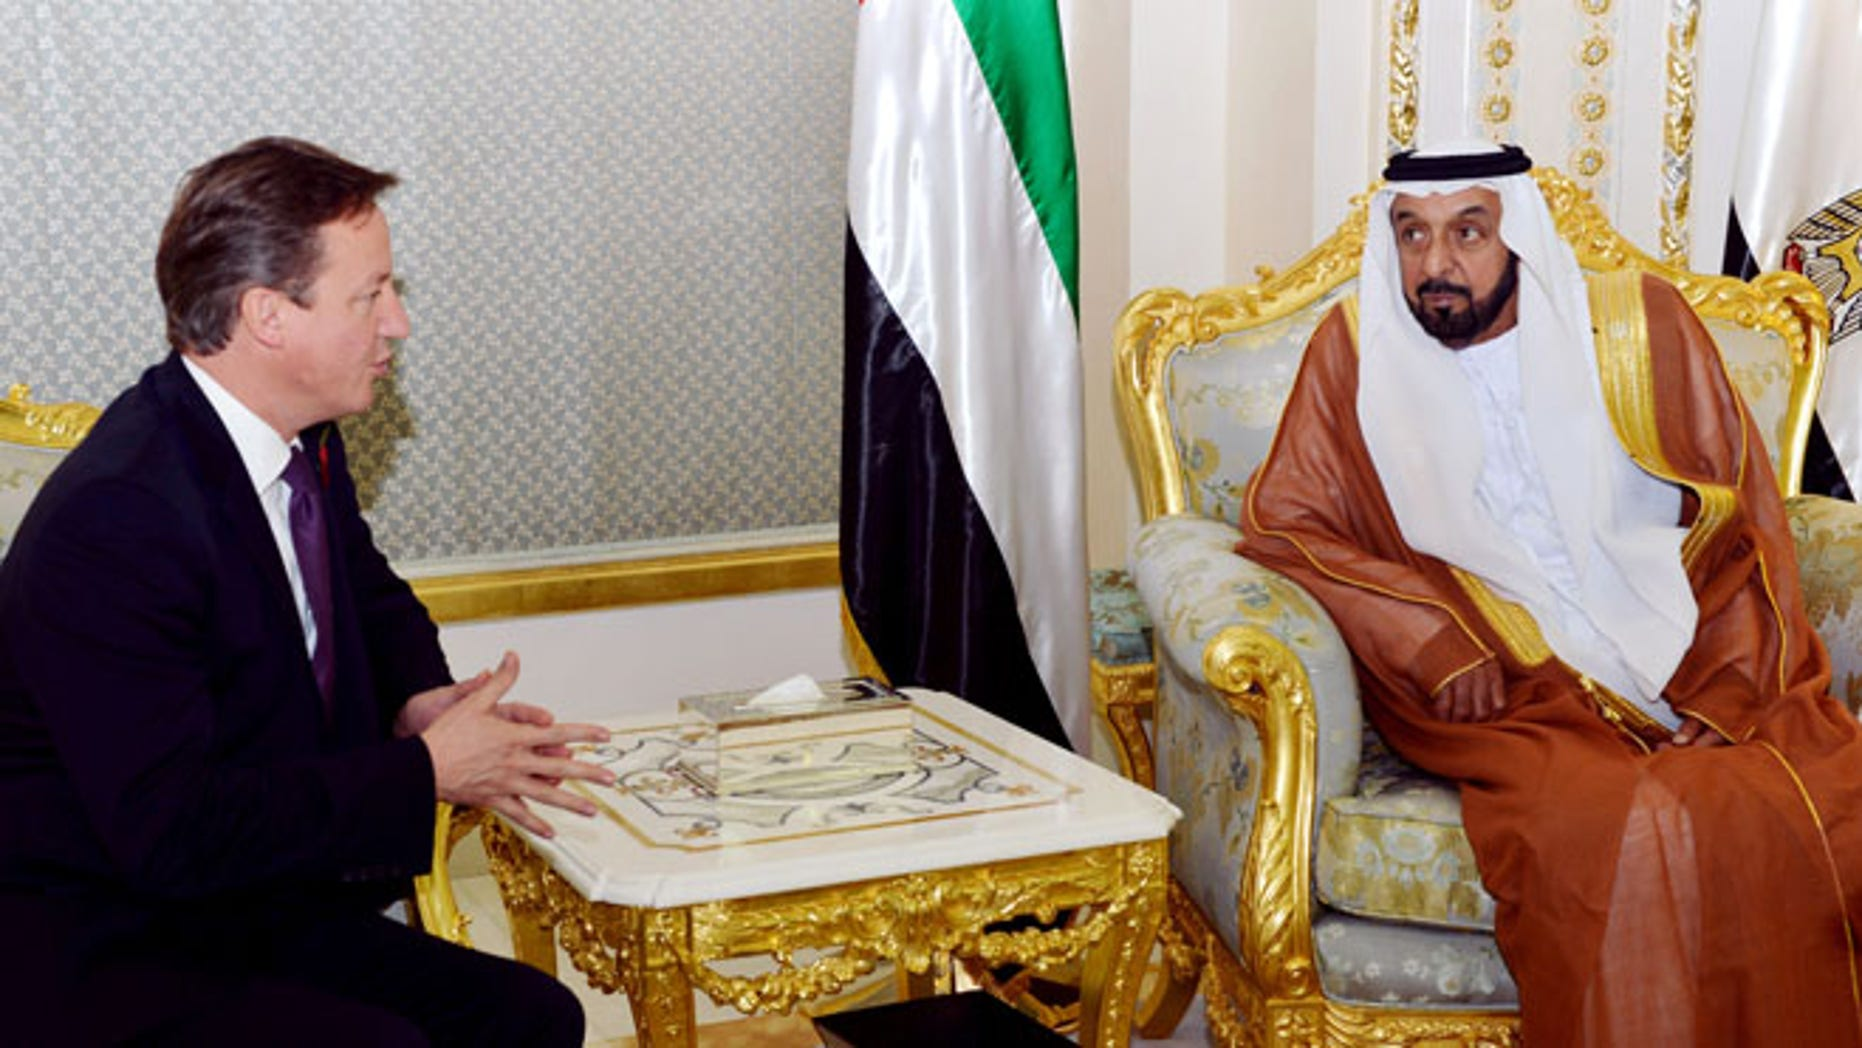 Nov. 6, 2012: British Prime Minister David Cameron, left, meets with President of the UAE, Sheikh Khalifa bin Zayed at al Nahyan at Al Rawda Palace in the city of al Ain in Abu Dhabi, United Arab Emirates.